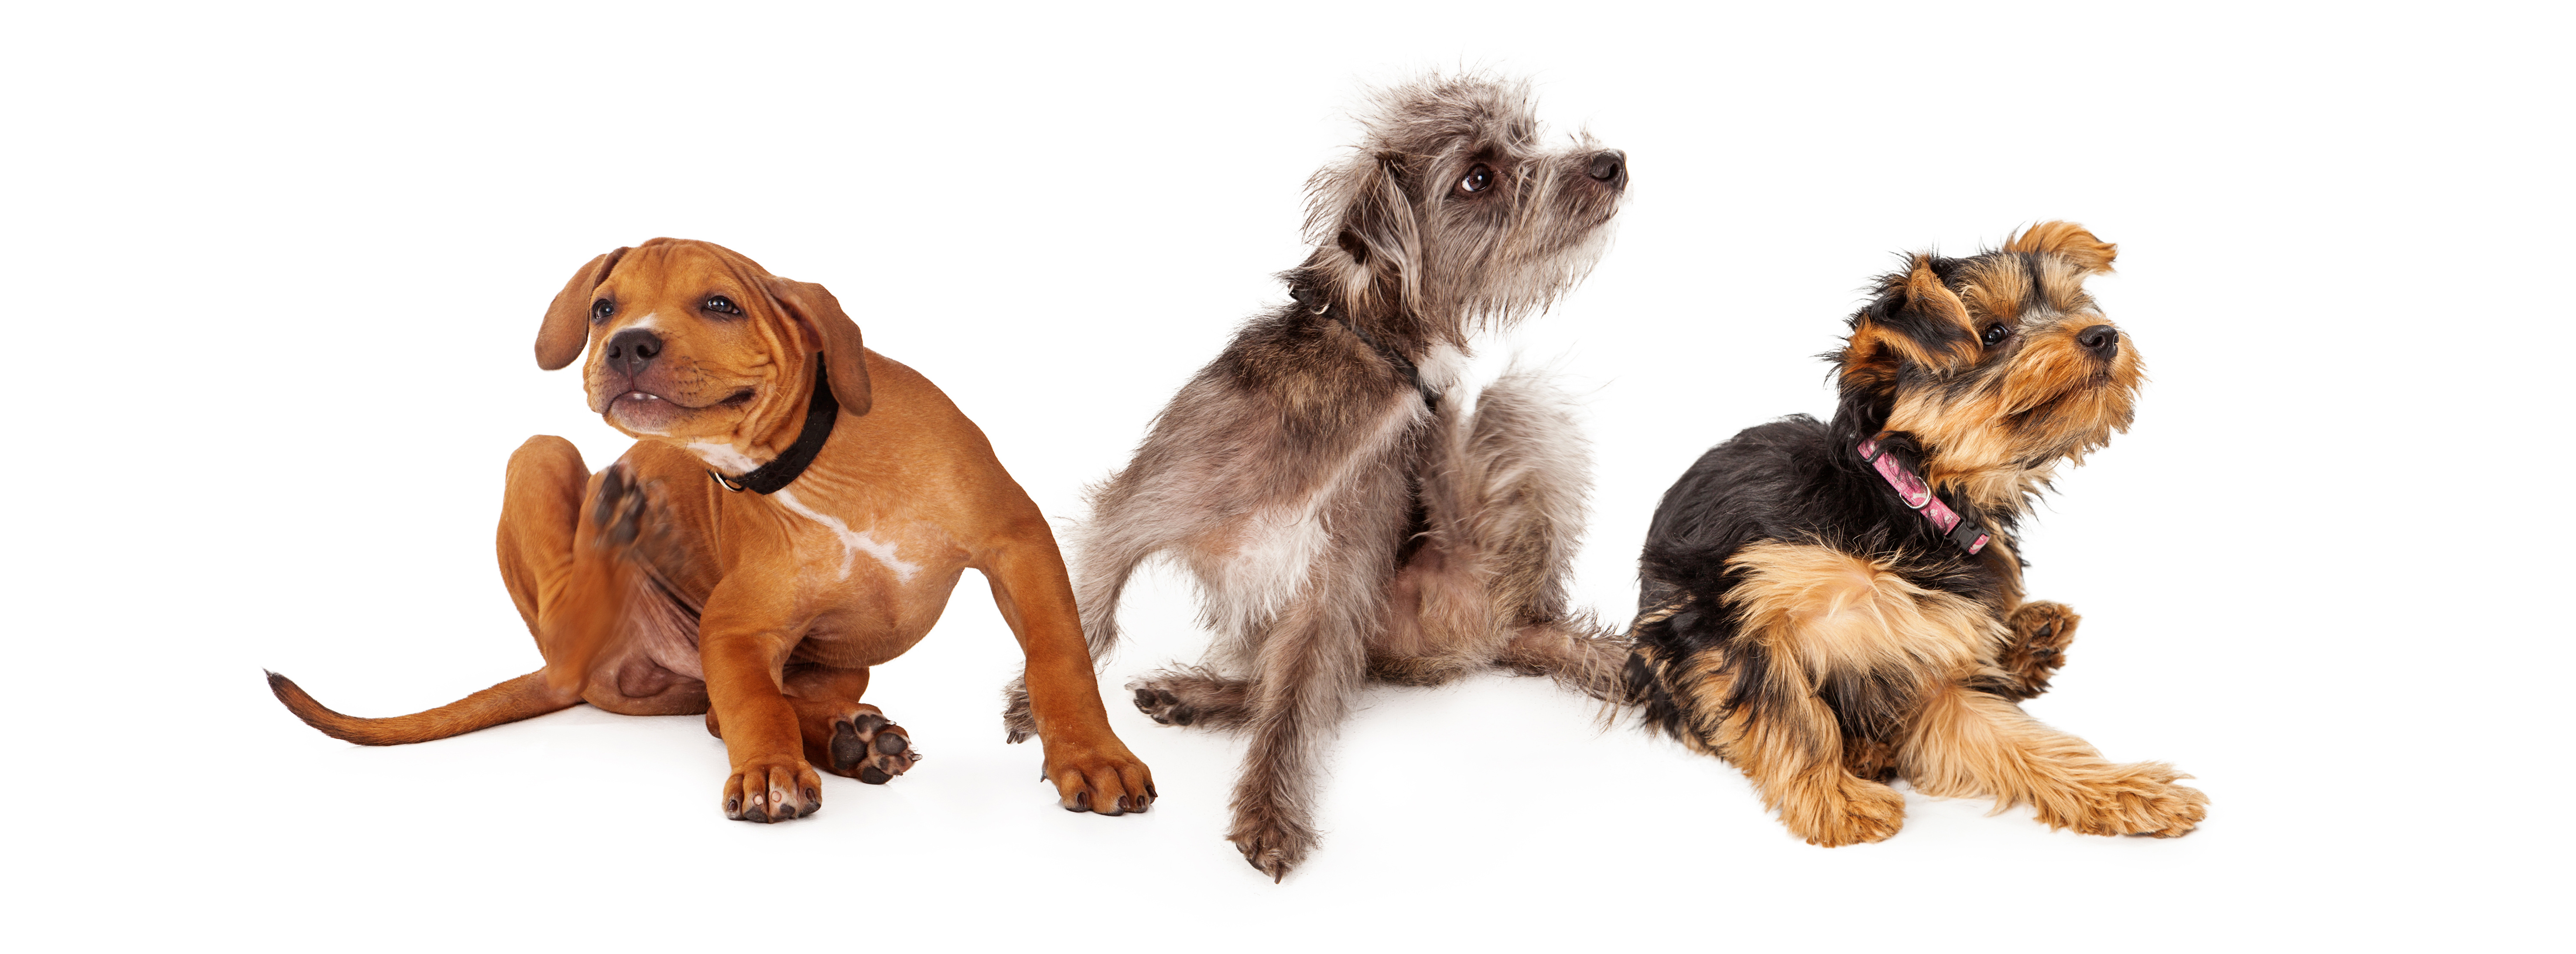 pet friendly dogs article image